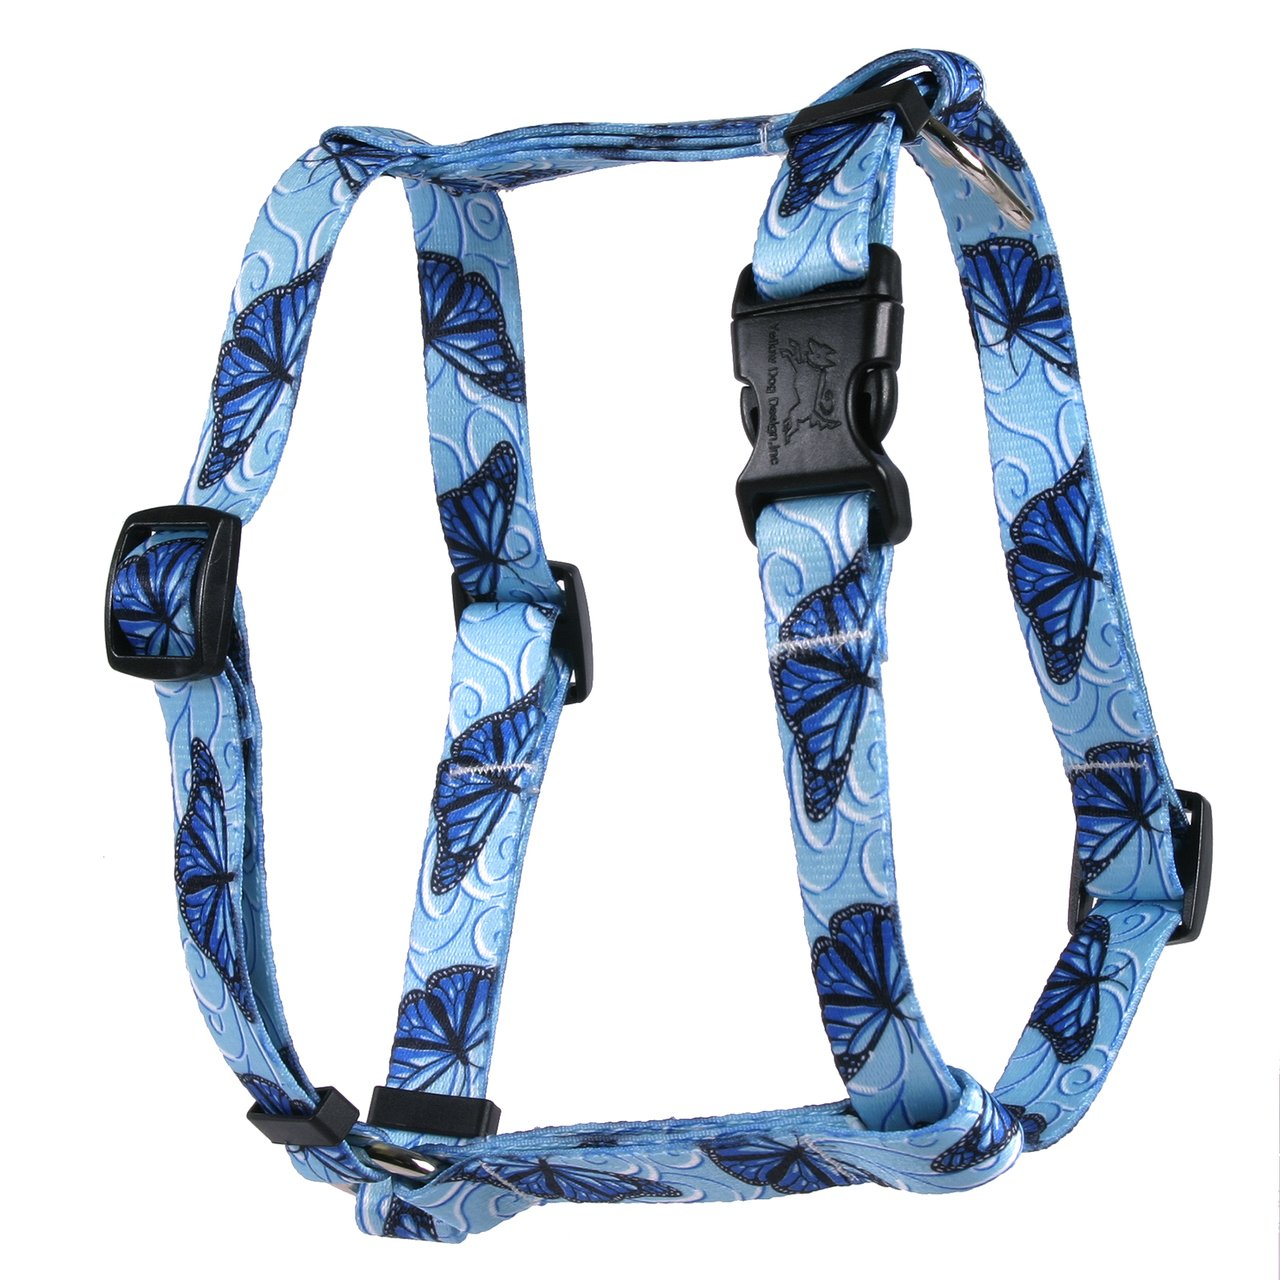 Yellow Dog Design Blue Butterfly Swirl Roman Style H Dog Harness Fits Chest of 8 to 14'', X-Small/3/8